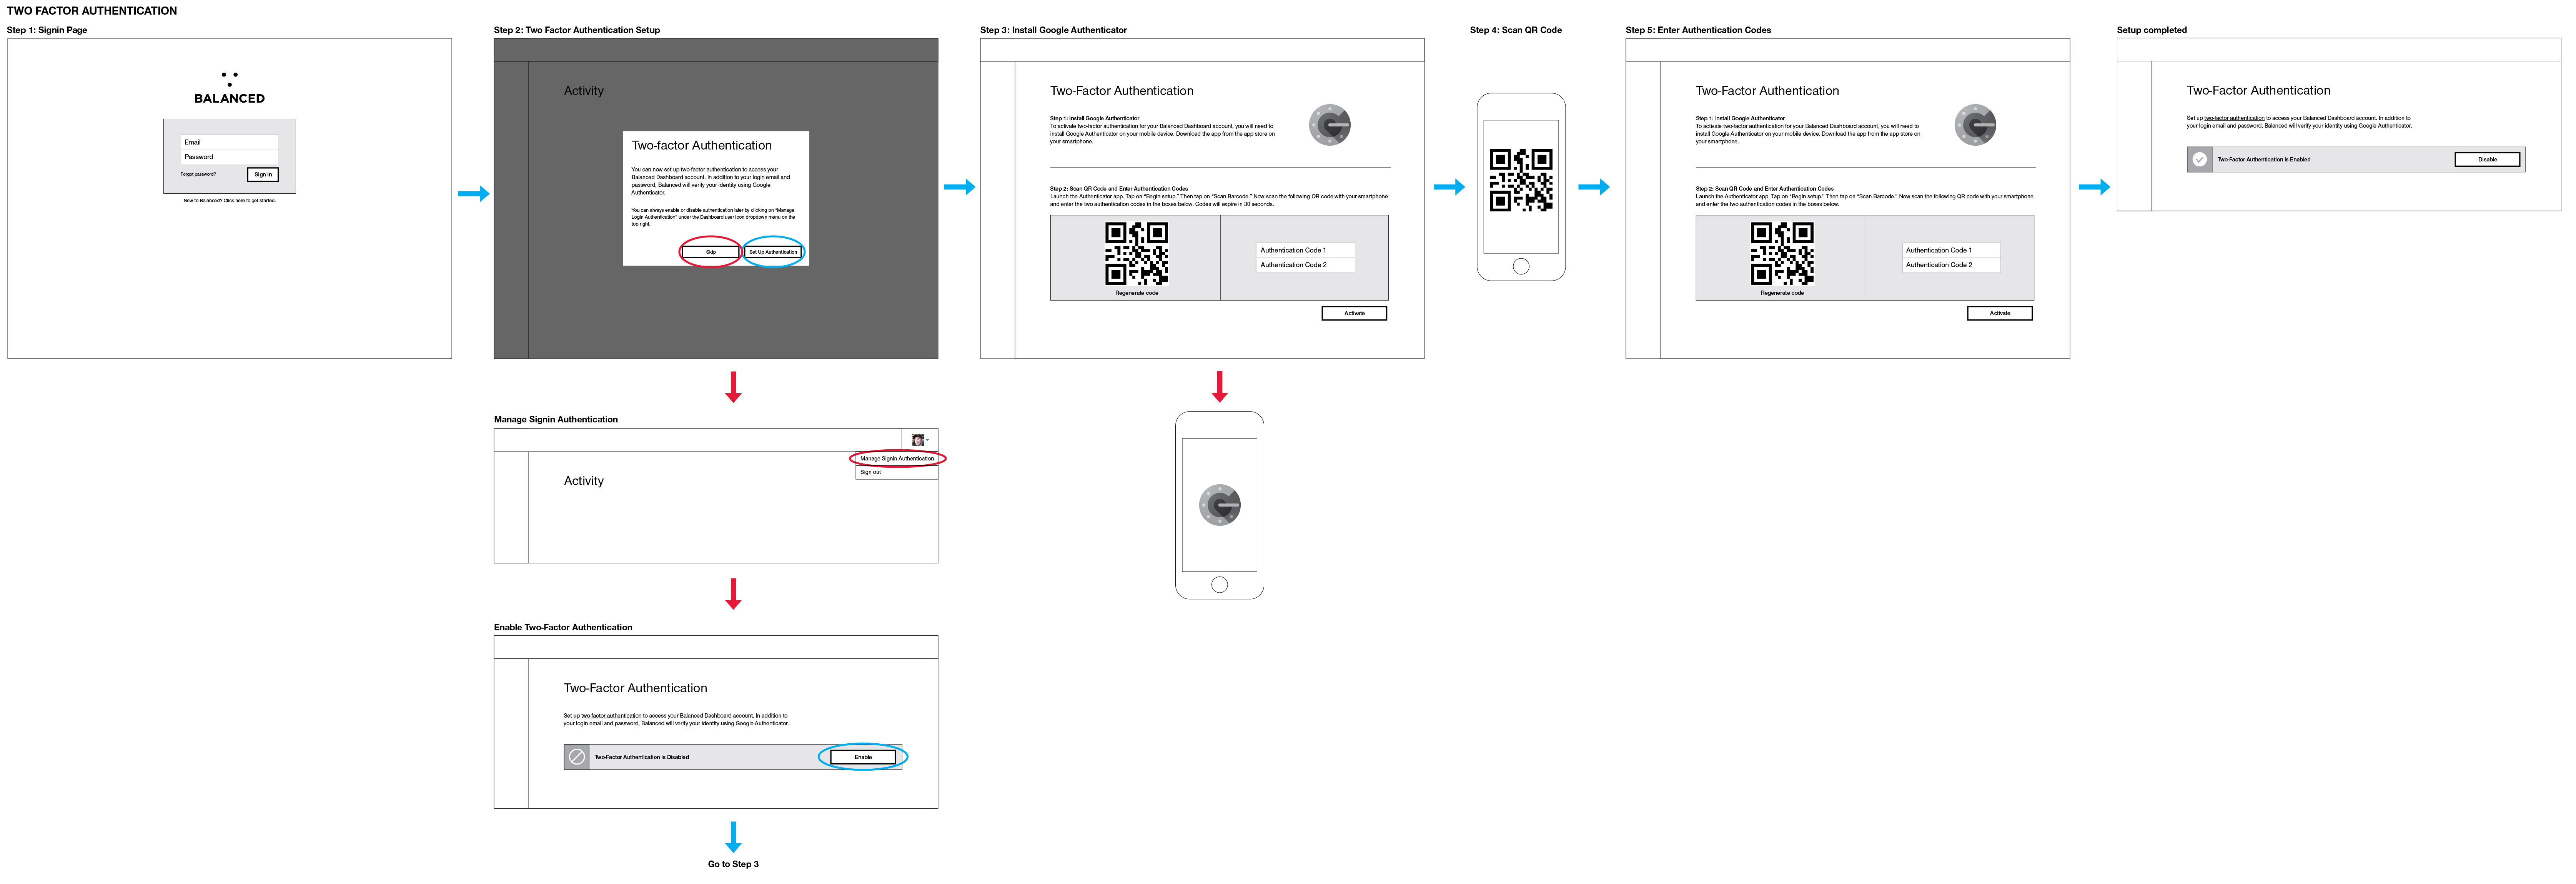 two_factor_authentication_wireframe